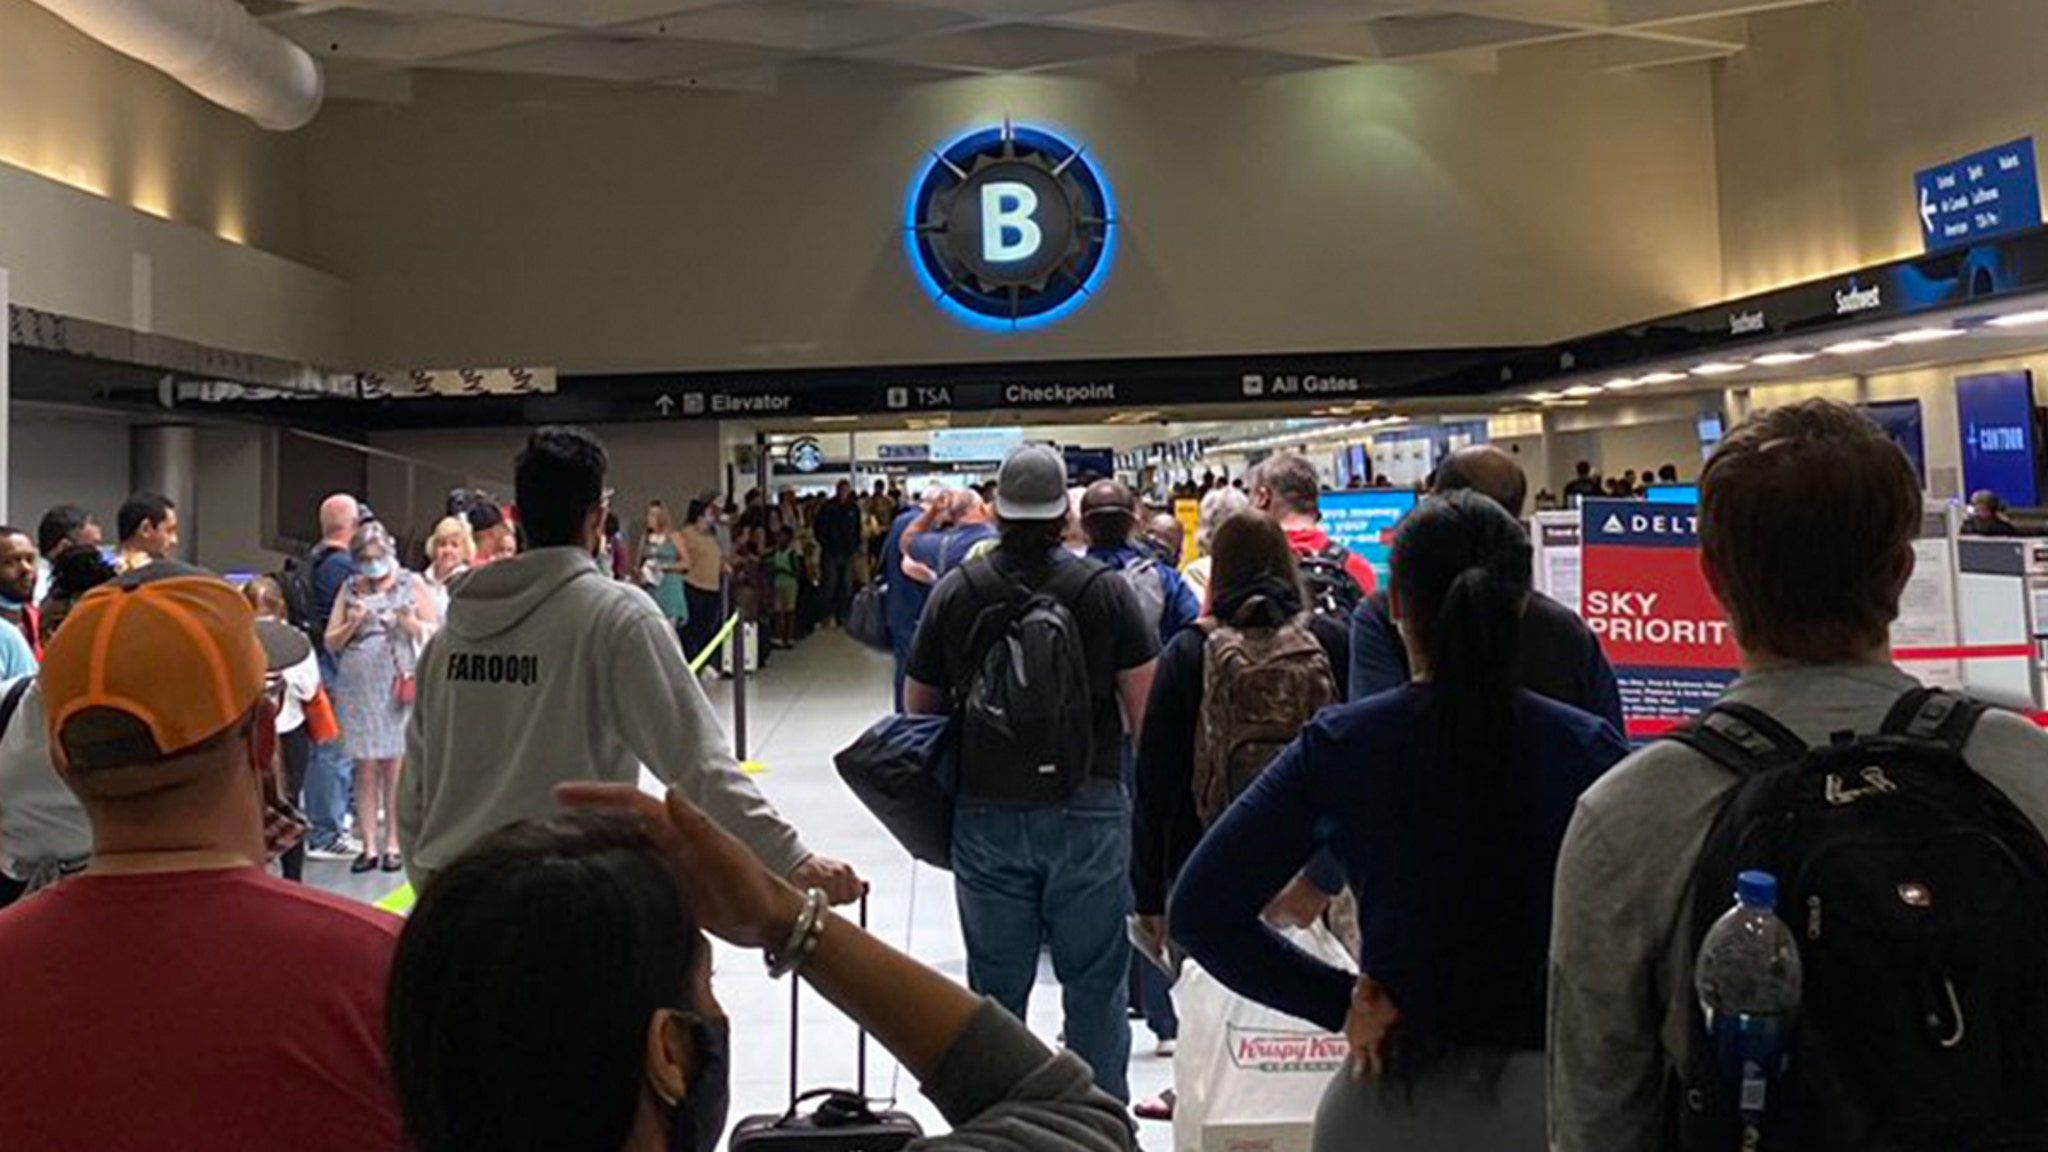 North Carolina Airport Insanely Long Lines ... Passengers Fuming Over Missed Flights